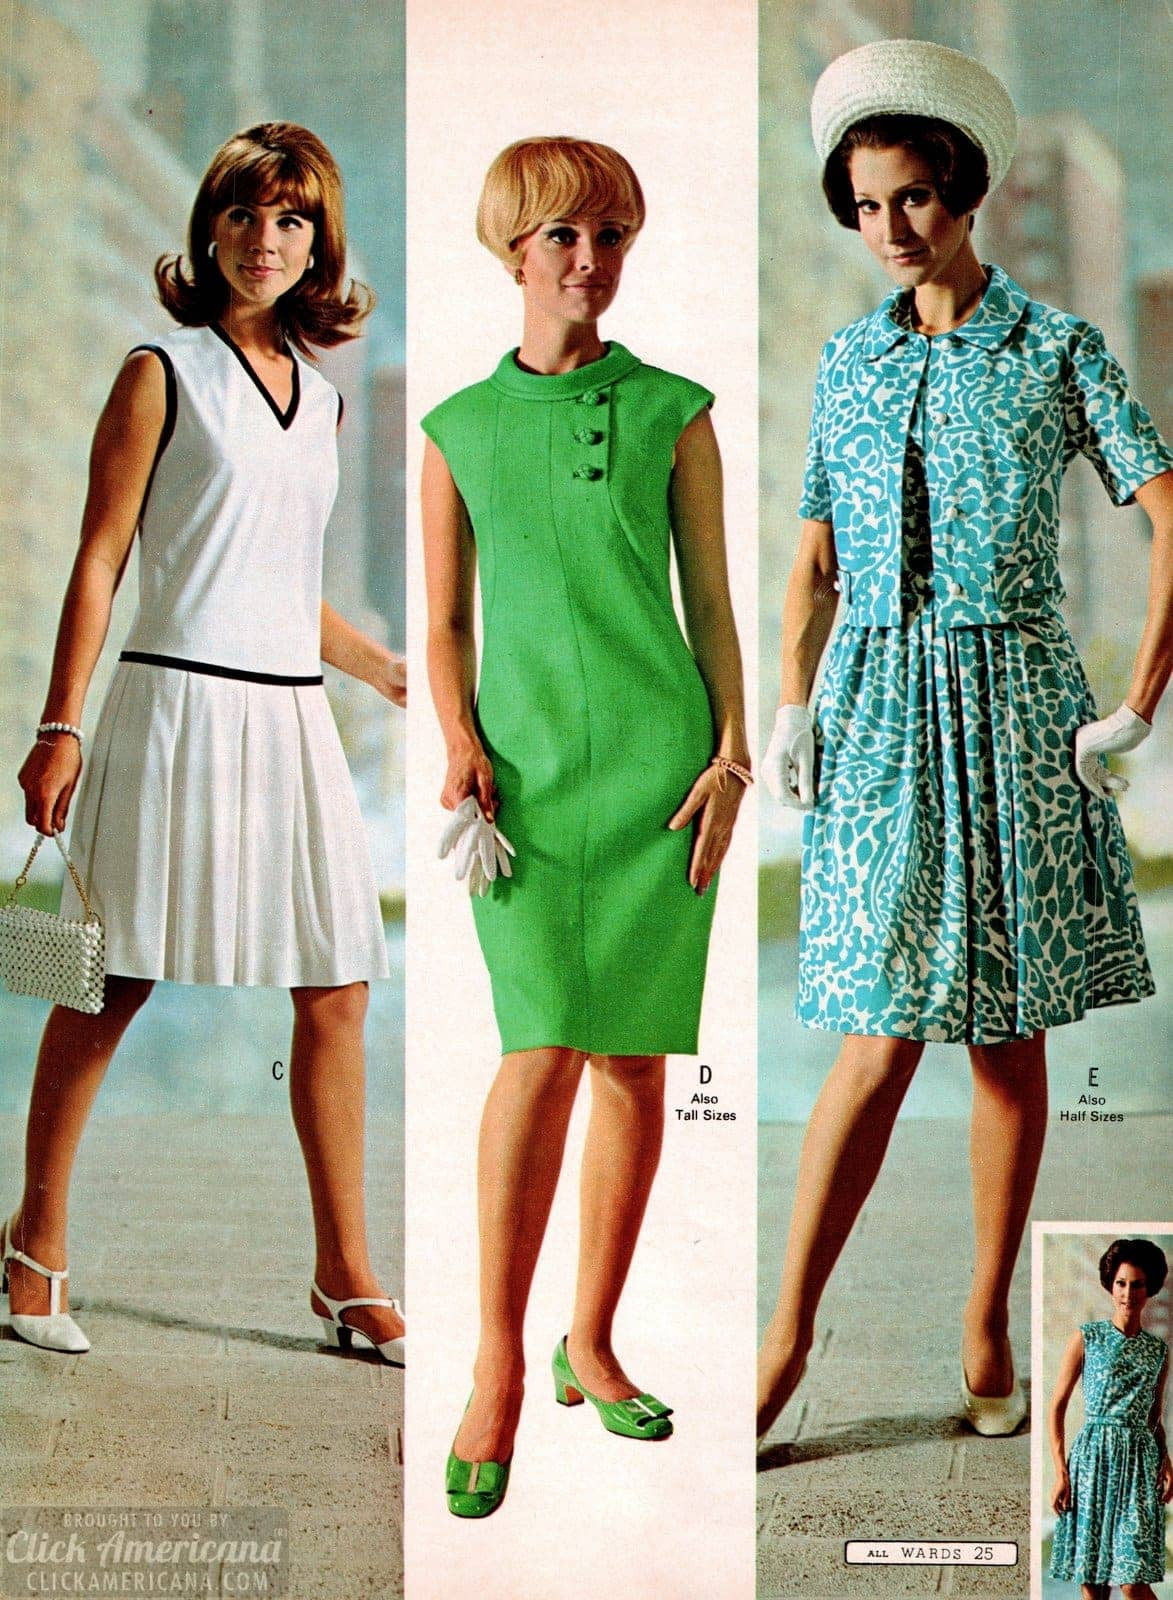 Groovy dresses in green, blue and white print or white with black edging